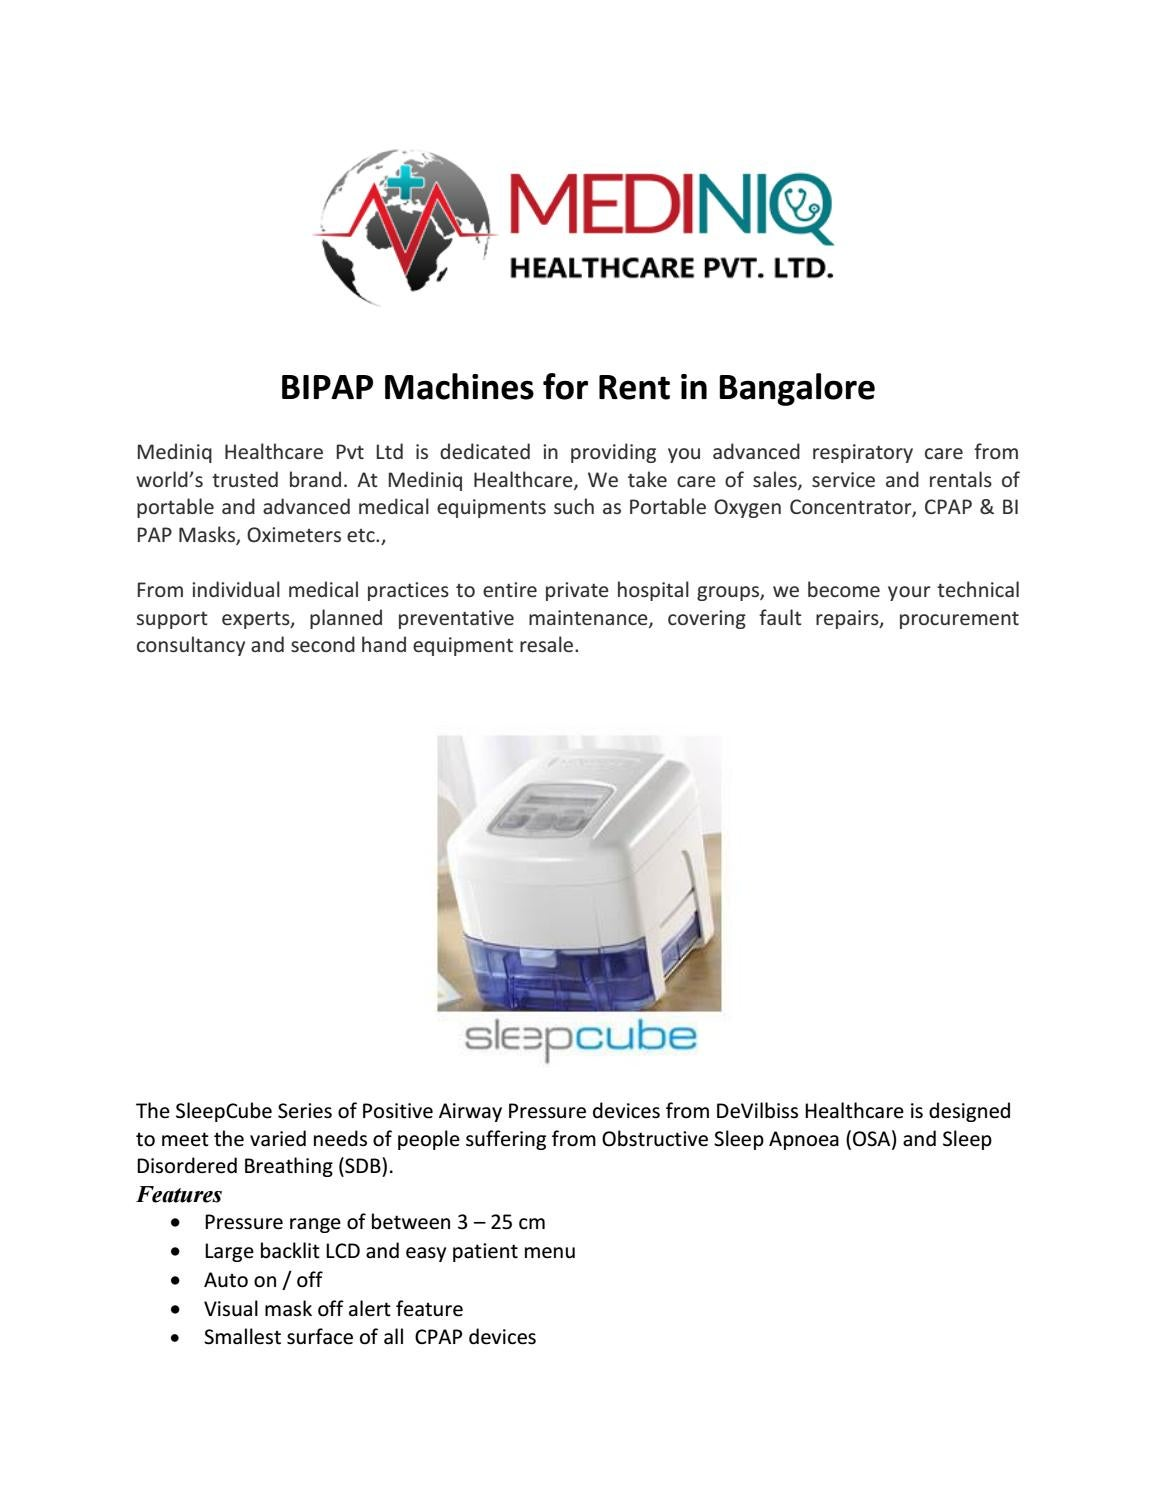 BIPAP Machines for Rent in Bangalore by mediniq - issuu